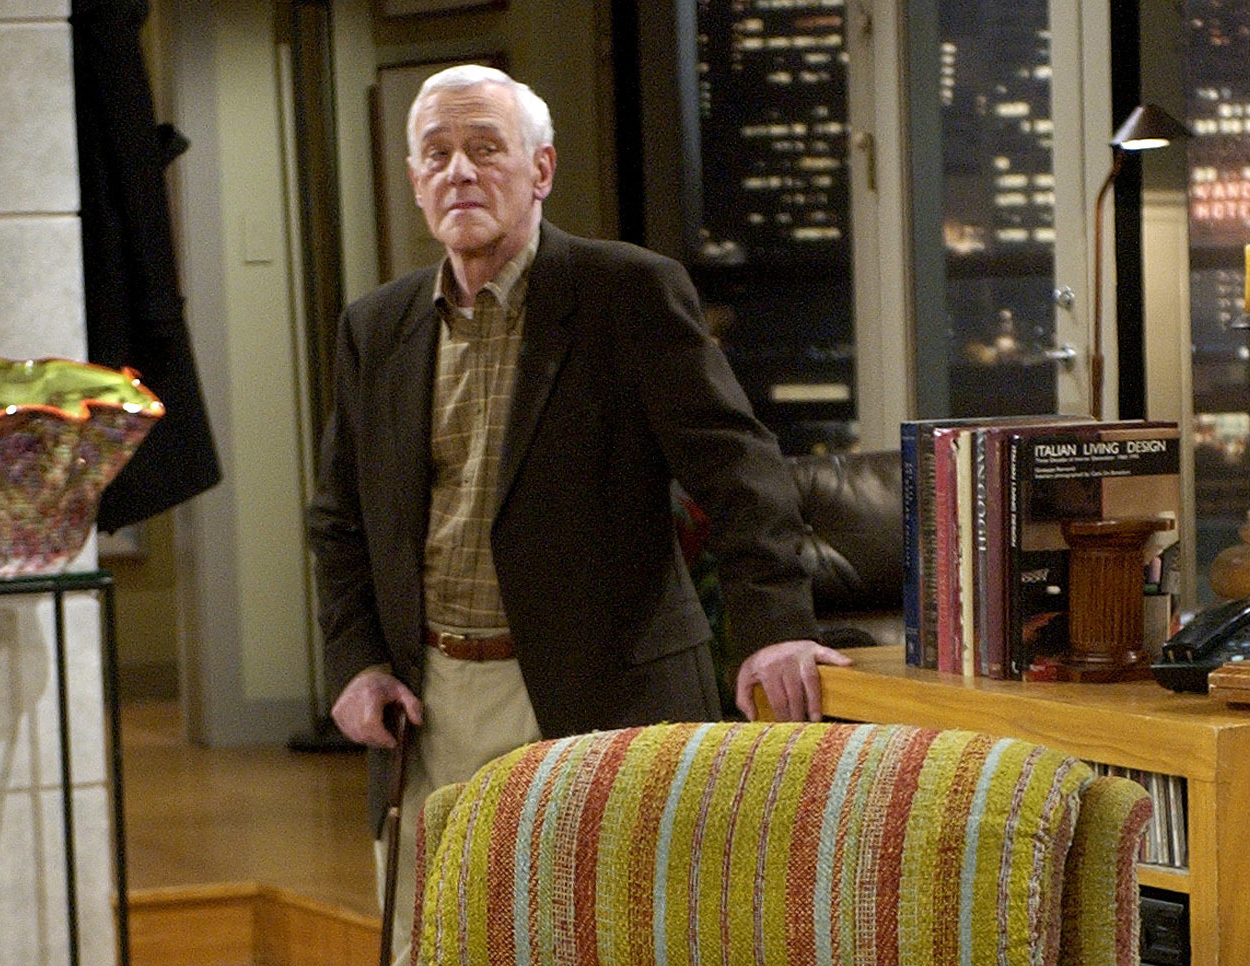 `Good´ Frasier star John Mahoney dies aged 77